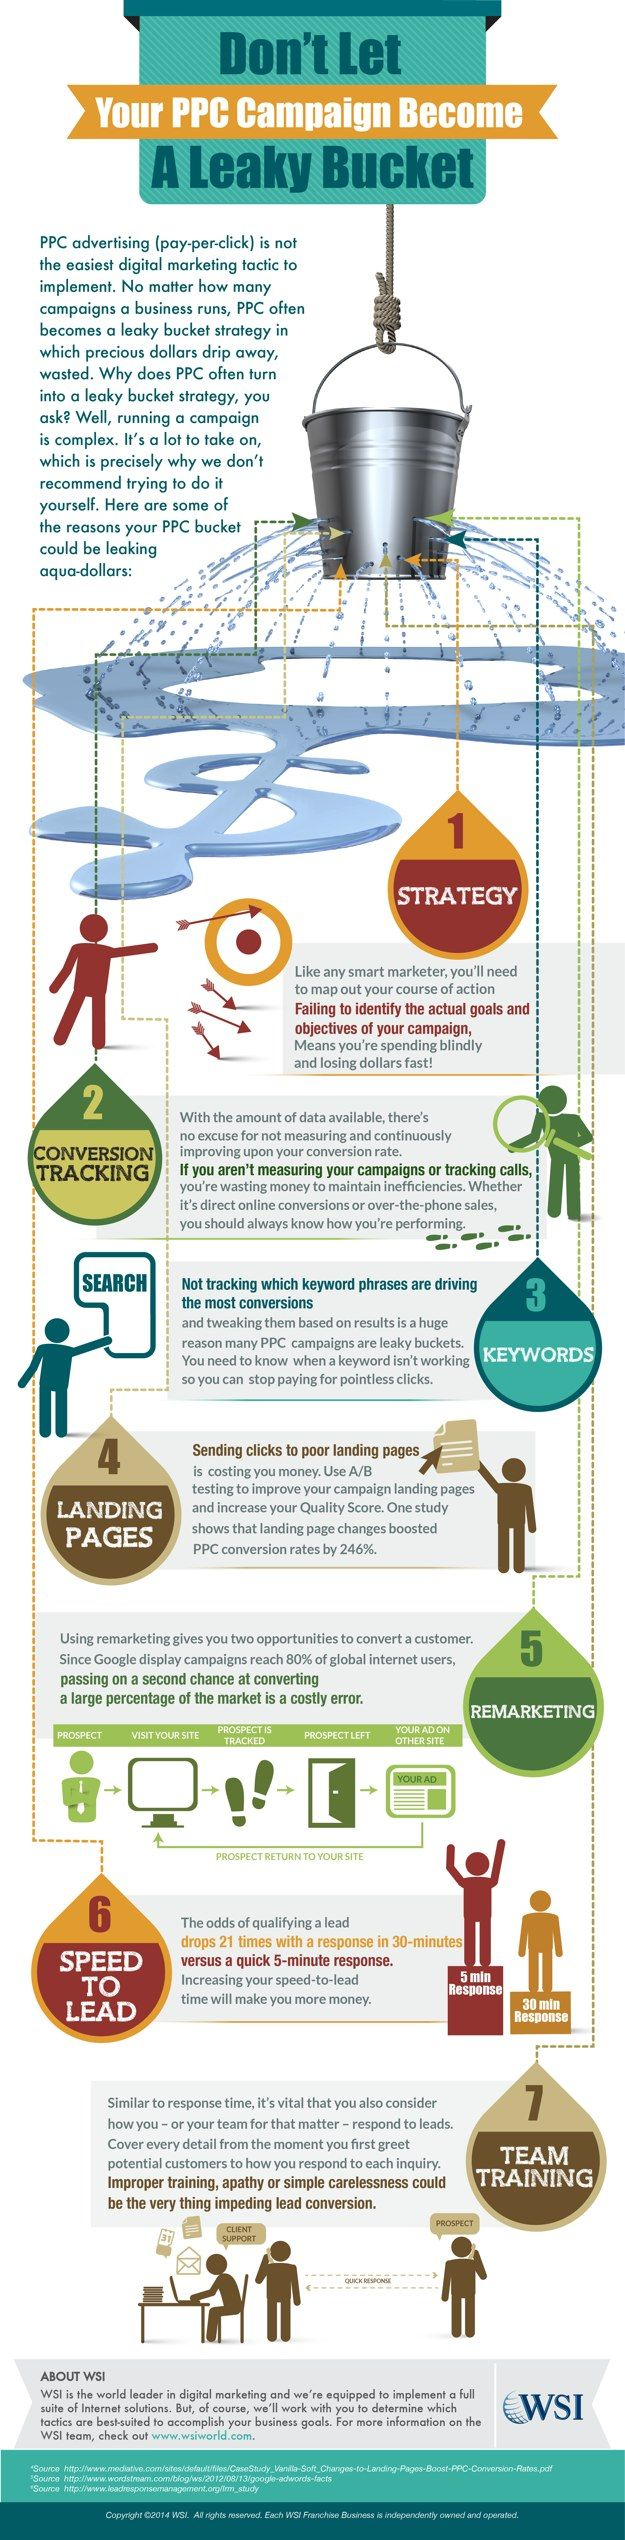 Advertising-Infographics-How-To-Prevent-Your-PPC-Campaign-From-Becoming-A-Leaky-Bucket-Infographic-WSI Advertising Infographics : How To Prevent Your PPC Campaign From Becoming A Leaky Bucket (Infographic) | WS...